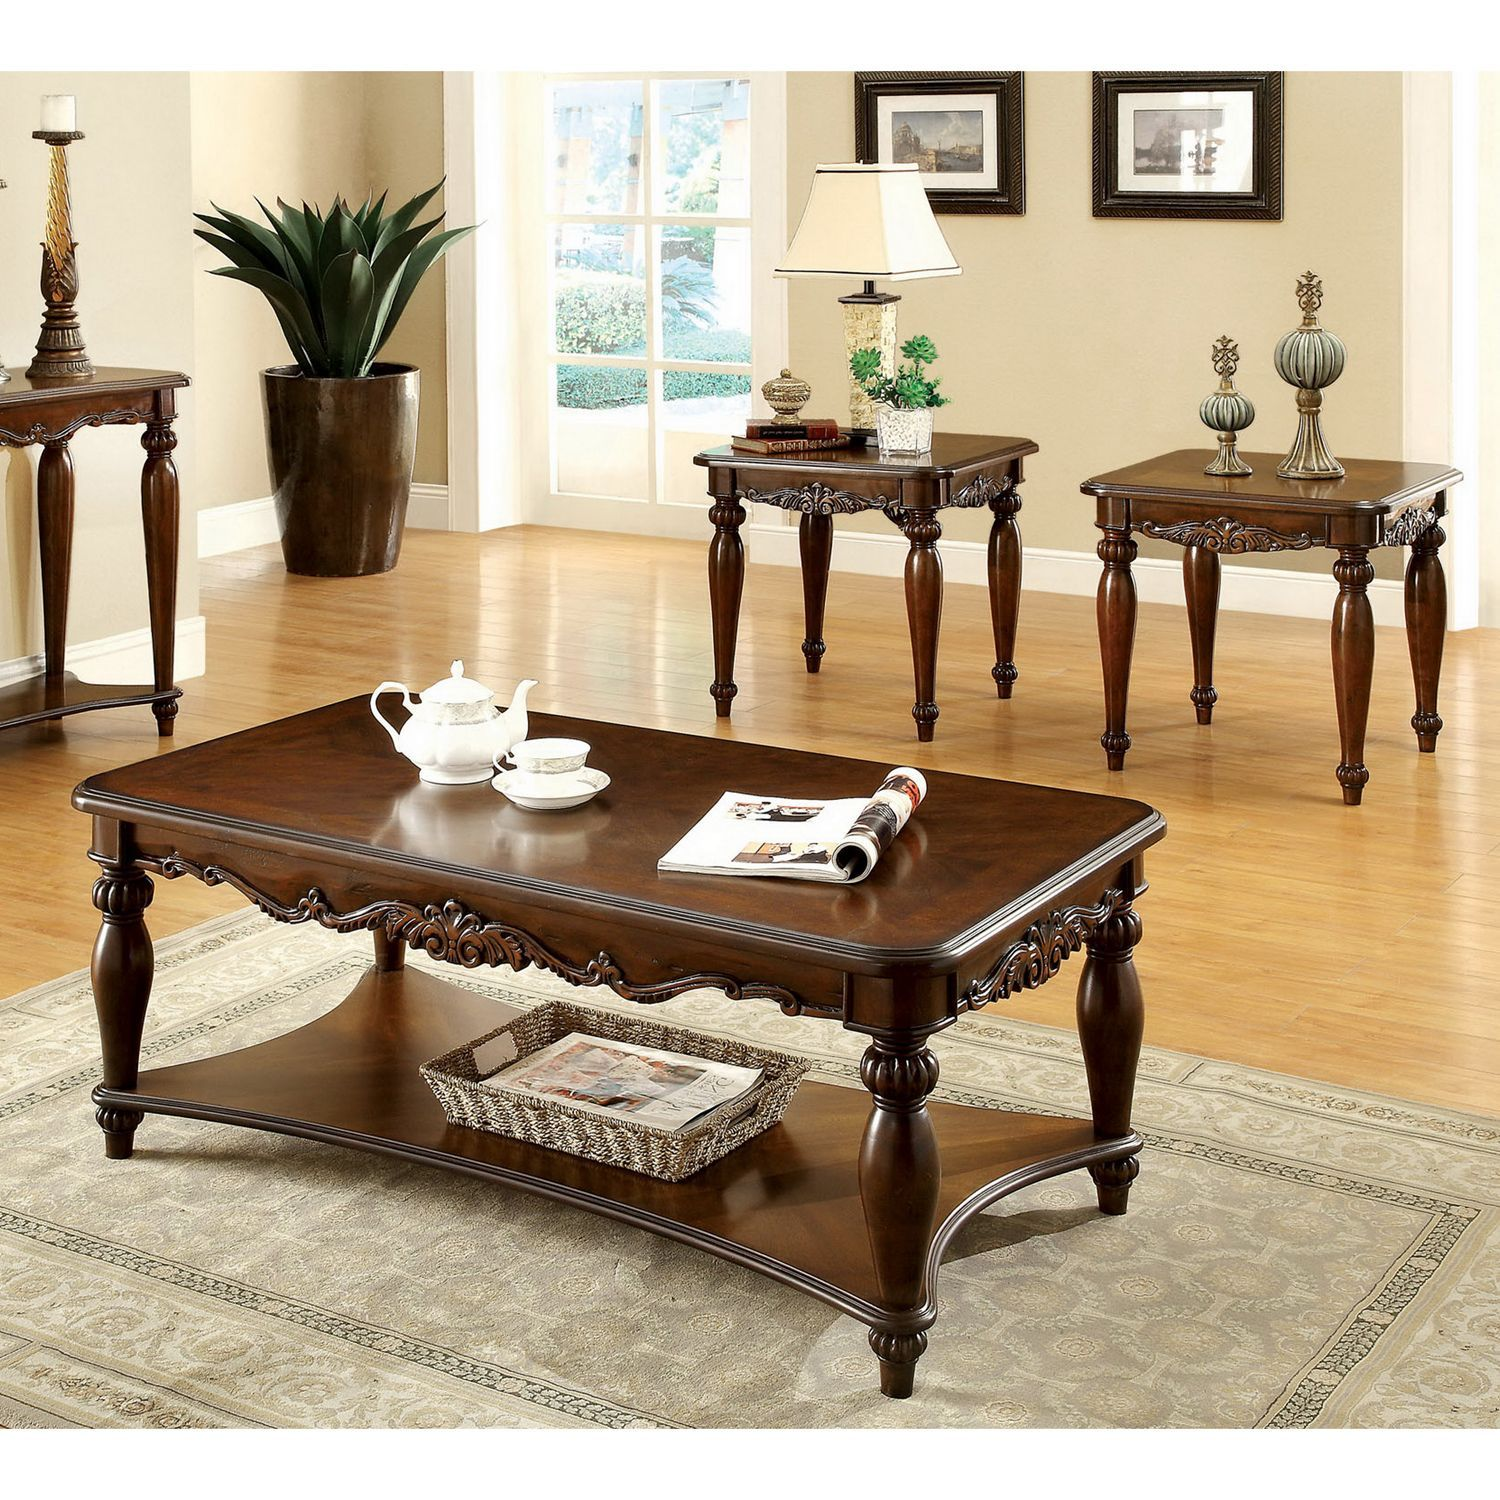 Furniture Of America 39 Macelli 39 3 Piece Cherry Finished Traditional Coffee End Table Set By